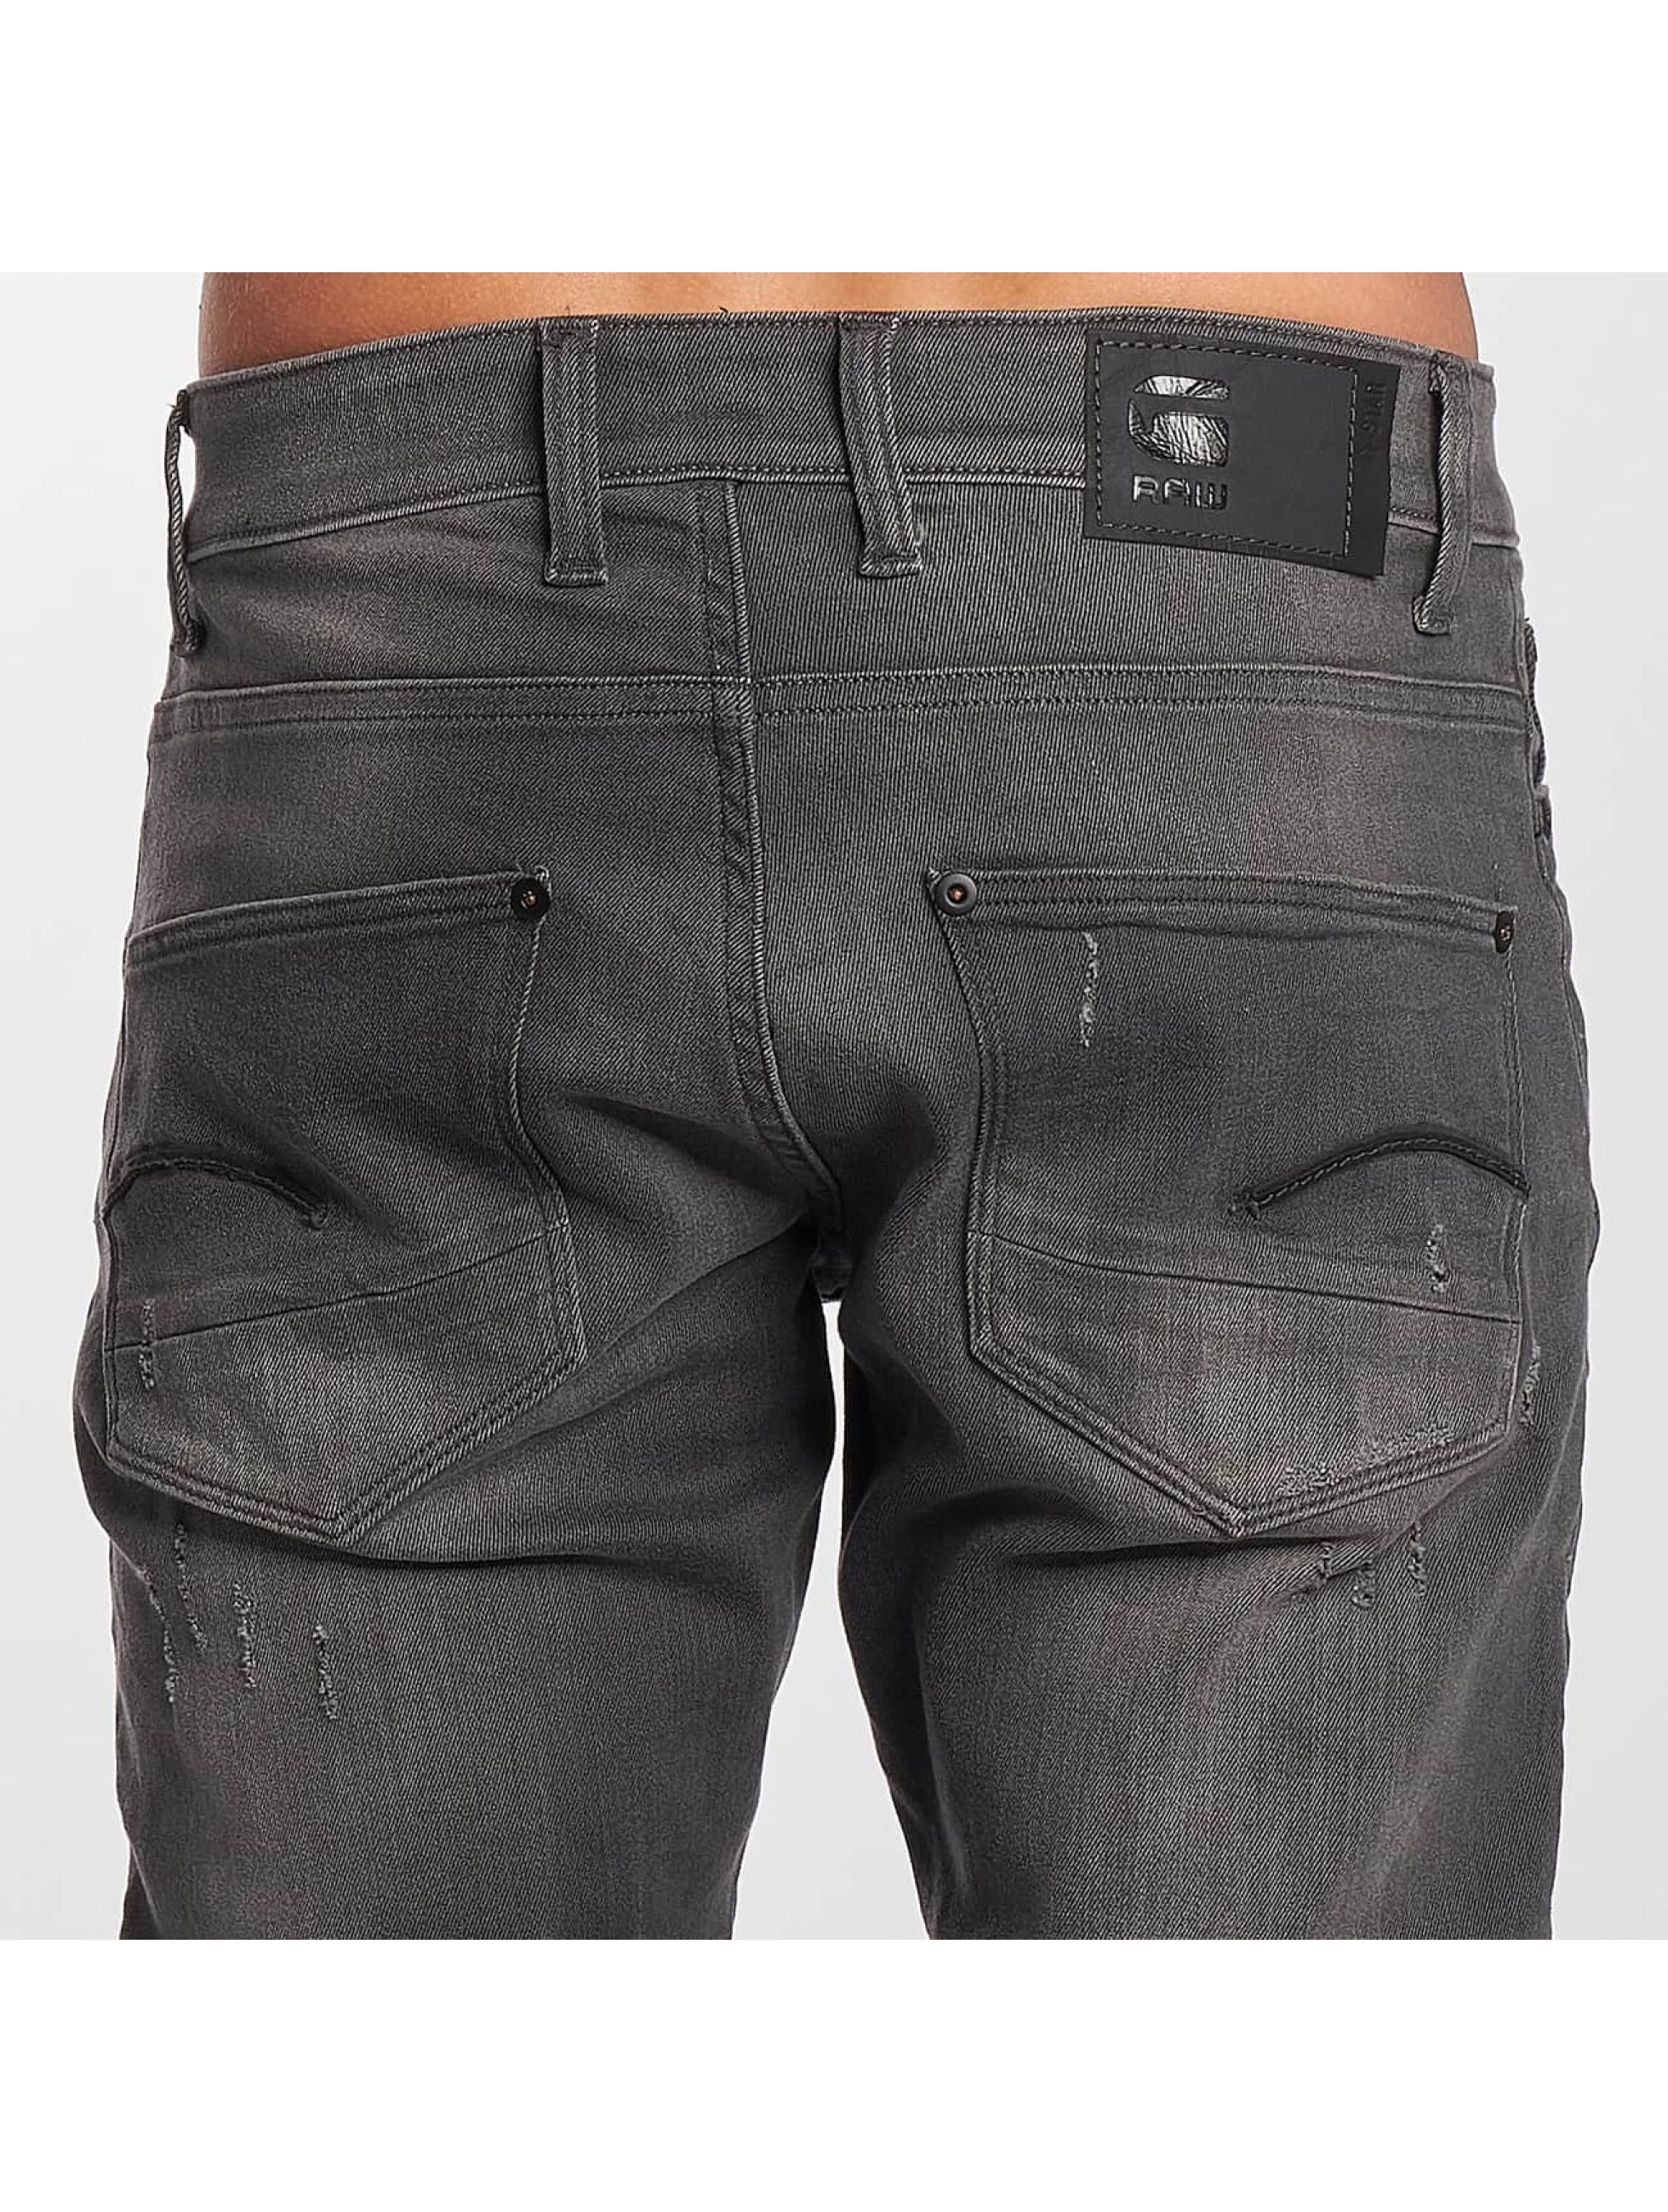 G-Star Slim Fit Jeans Revend Super grijs